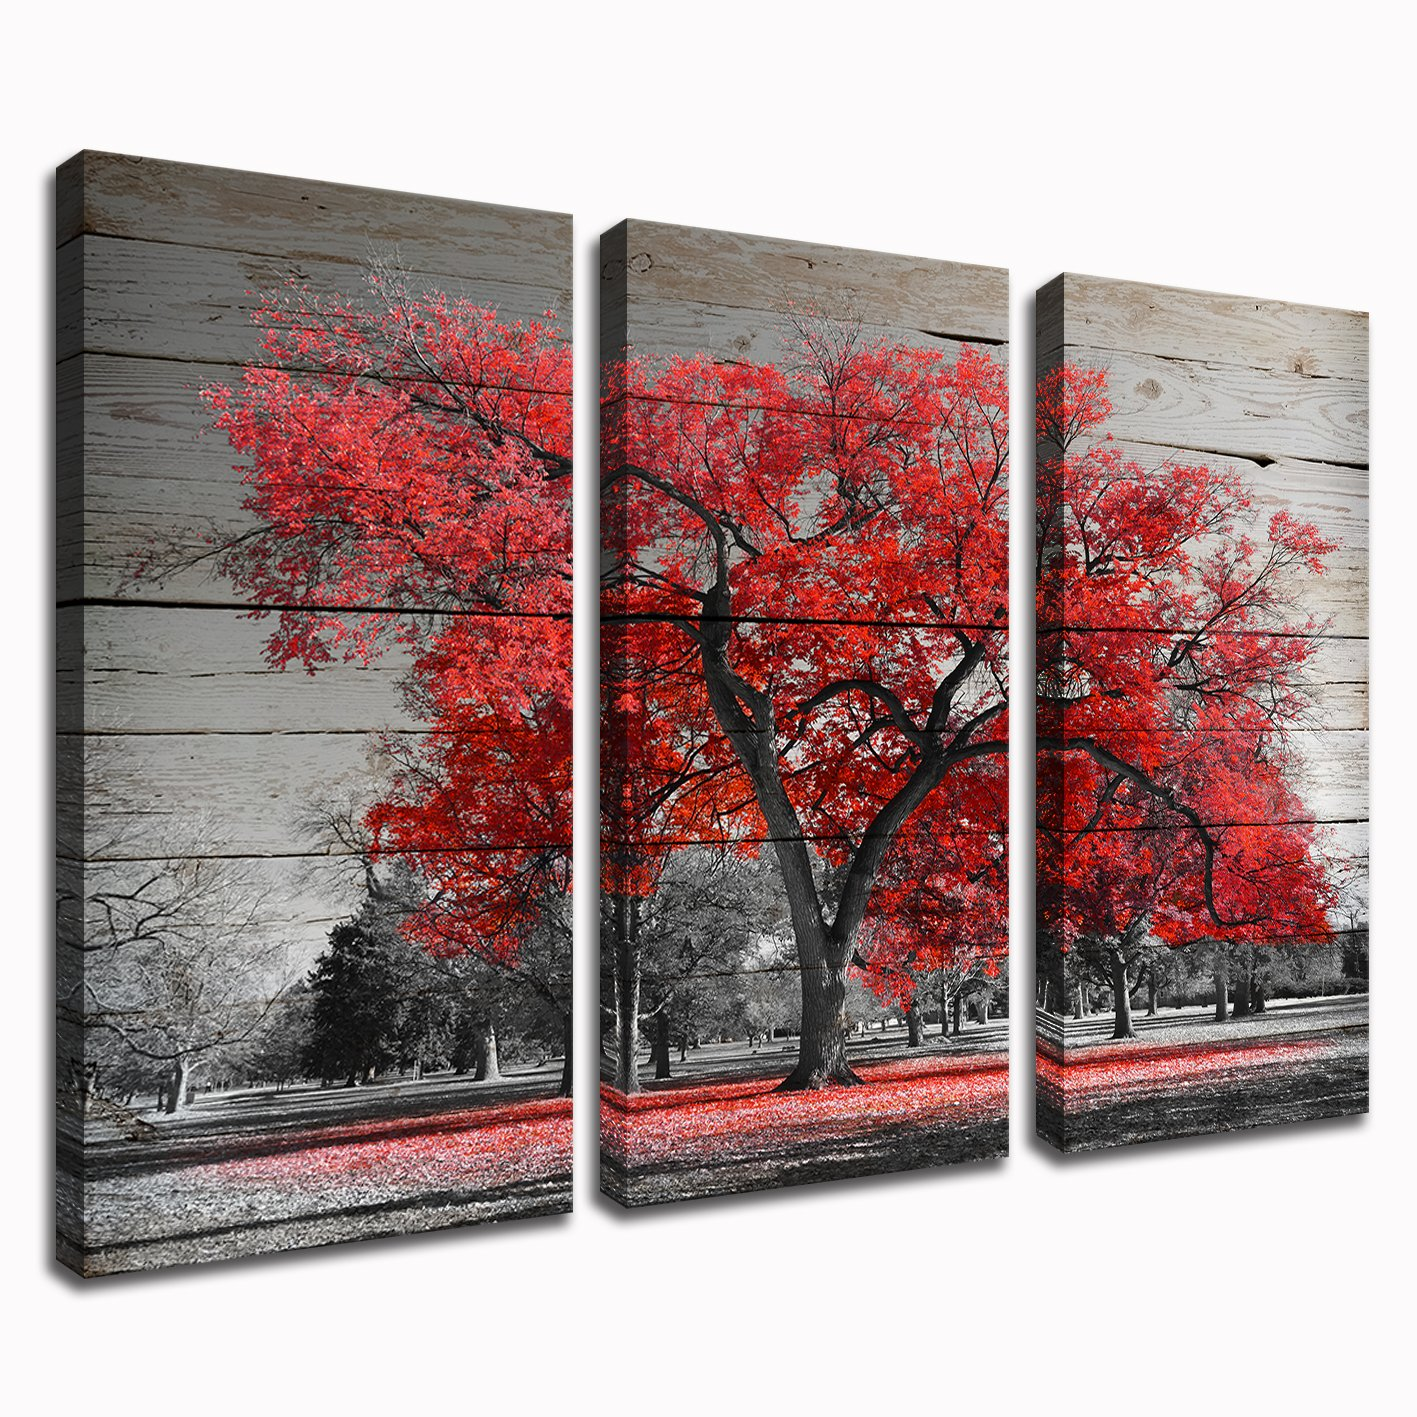 """Kolo Wall Art 3 Piece Black and Red Tree Canvas Art Prints Autumn Fall Maple Forest with Leaves Picture Painting Home Decor for Living Room 16""""x32""""x3 (Red Maple)"""